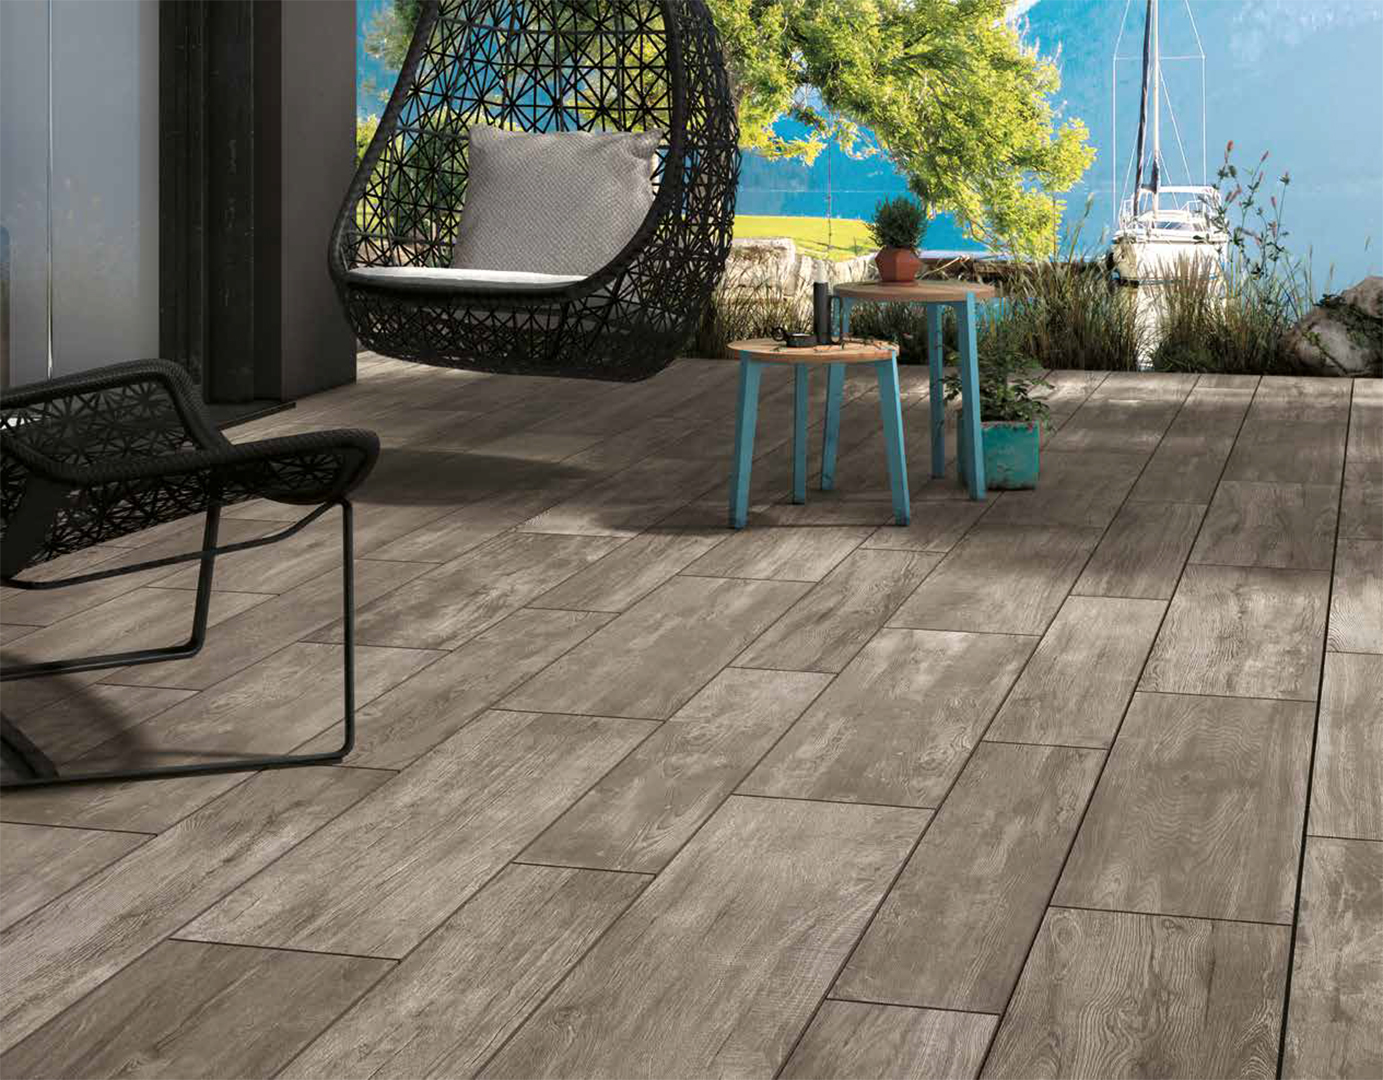 Fliesen In Holzoptik Outdoor Nau 2 The Nau 2 Collection Of Ceramic Tiles Mirage